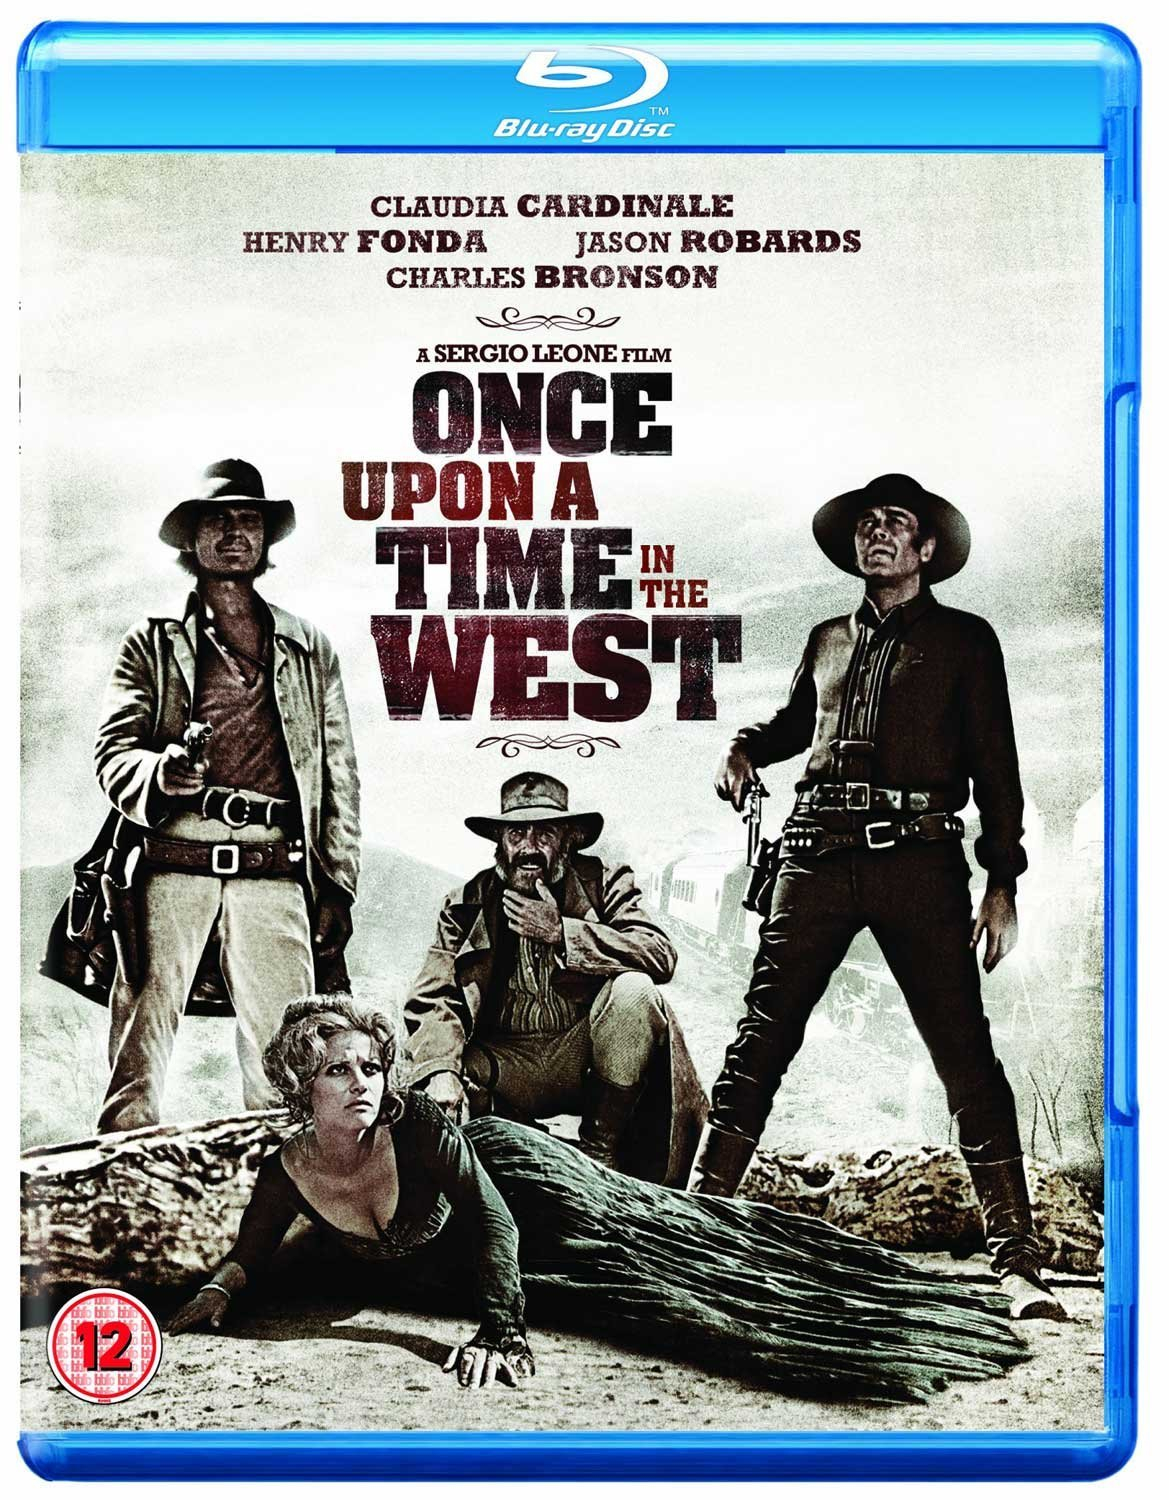 Buy Once Upon a Time in the West (Blu-ray)